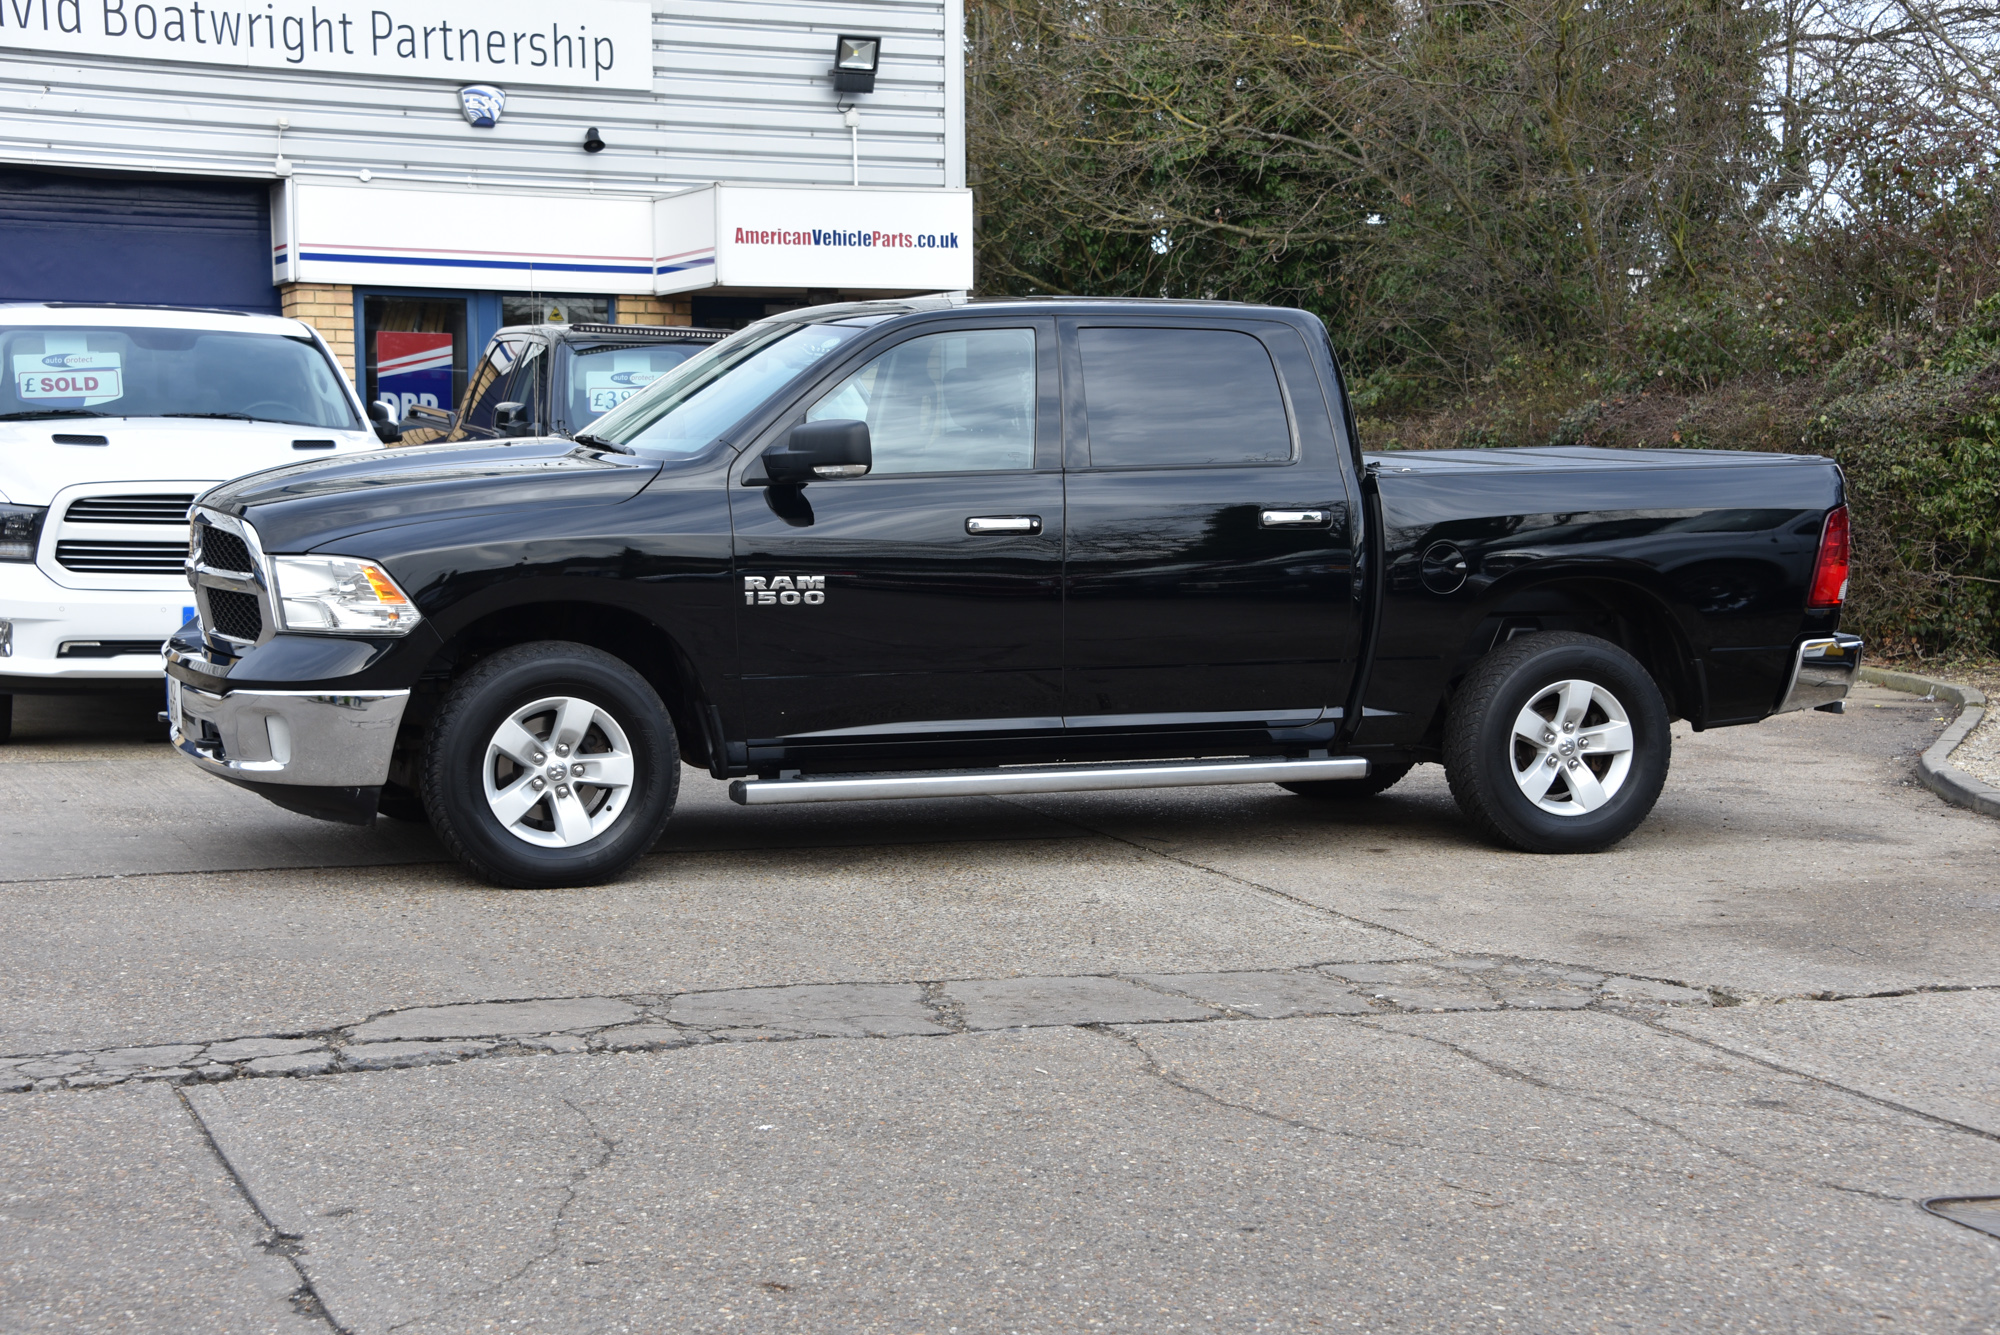 2013 dodge ram 4x4 crew with lpg for sale in the uk. Black Bedroom Furniture Sets. Home Design Ideas